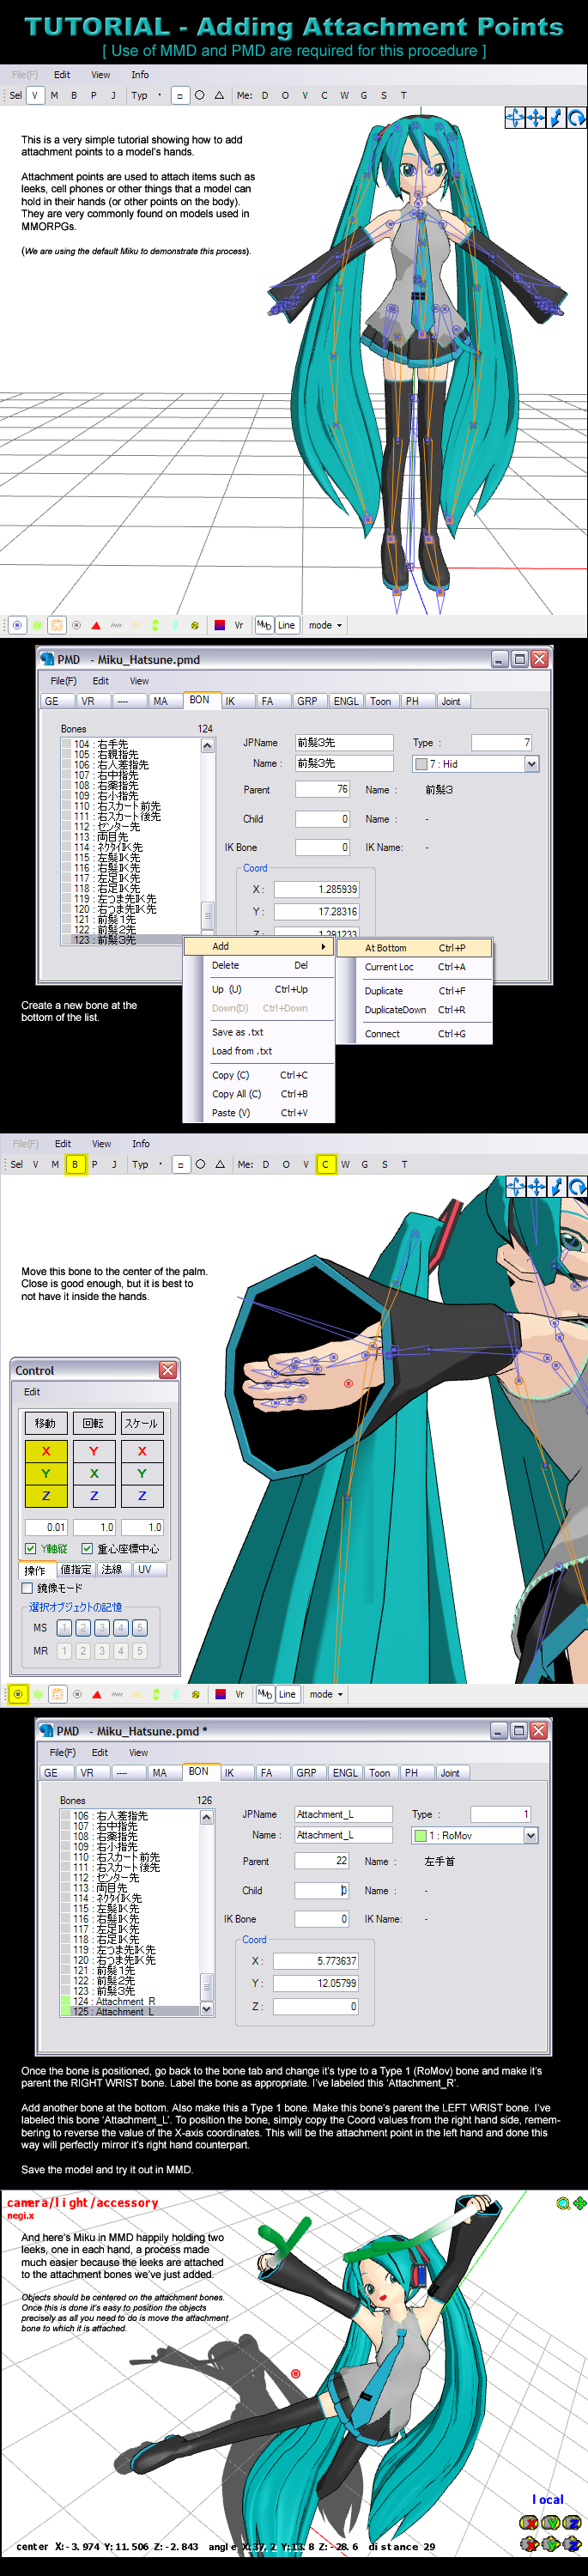 MMD/PMD Tutorial - Adding Attachment Points